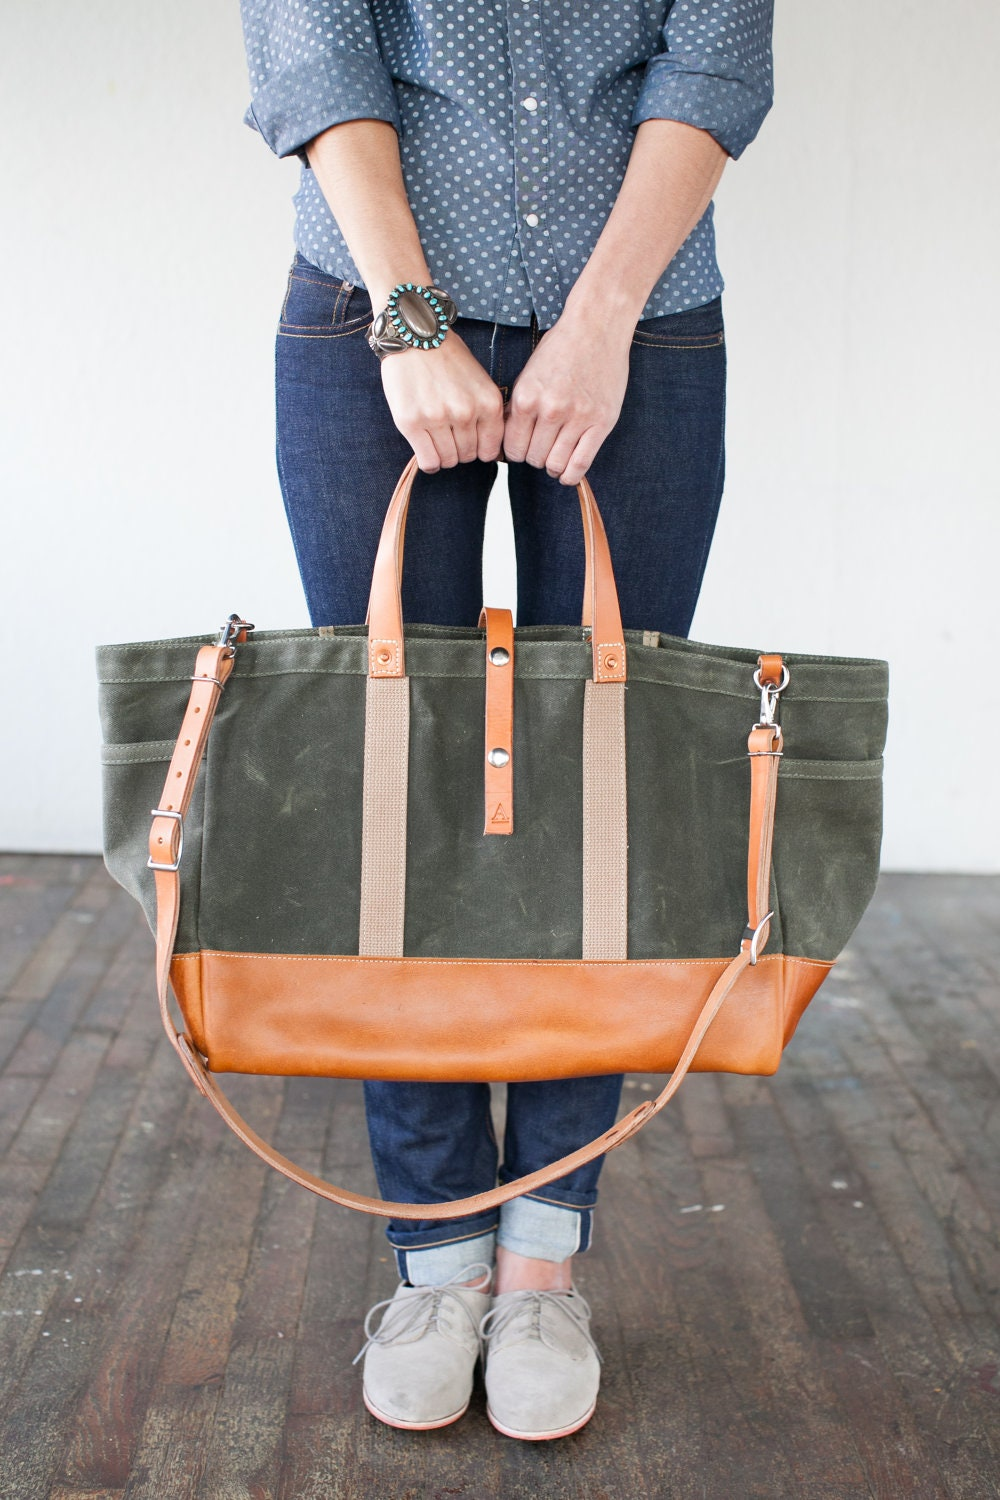 No. 175 Leather Bottom Tote - ArtifactBags